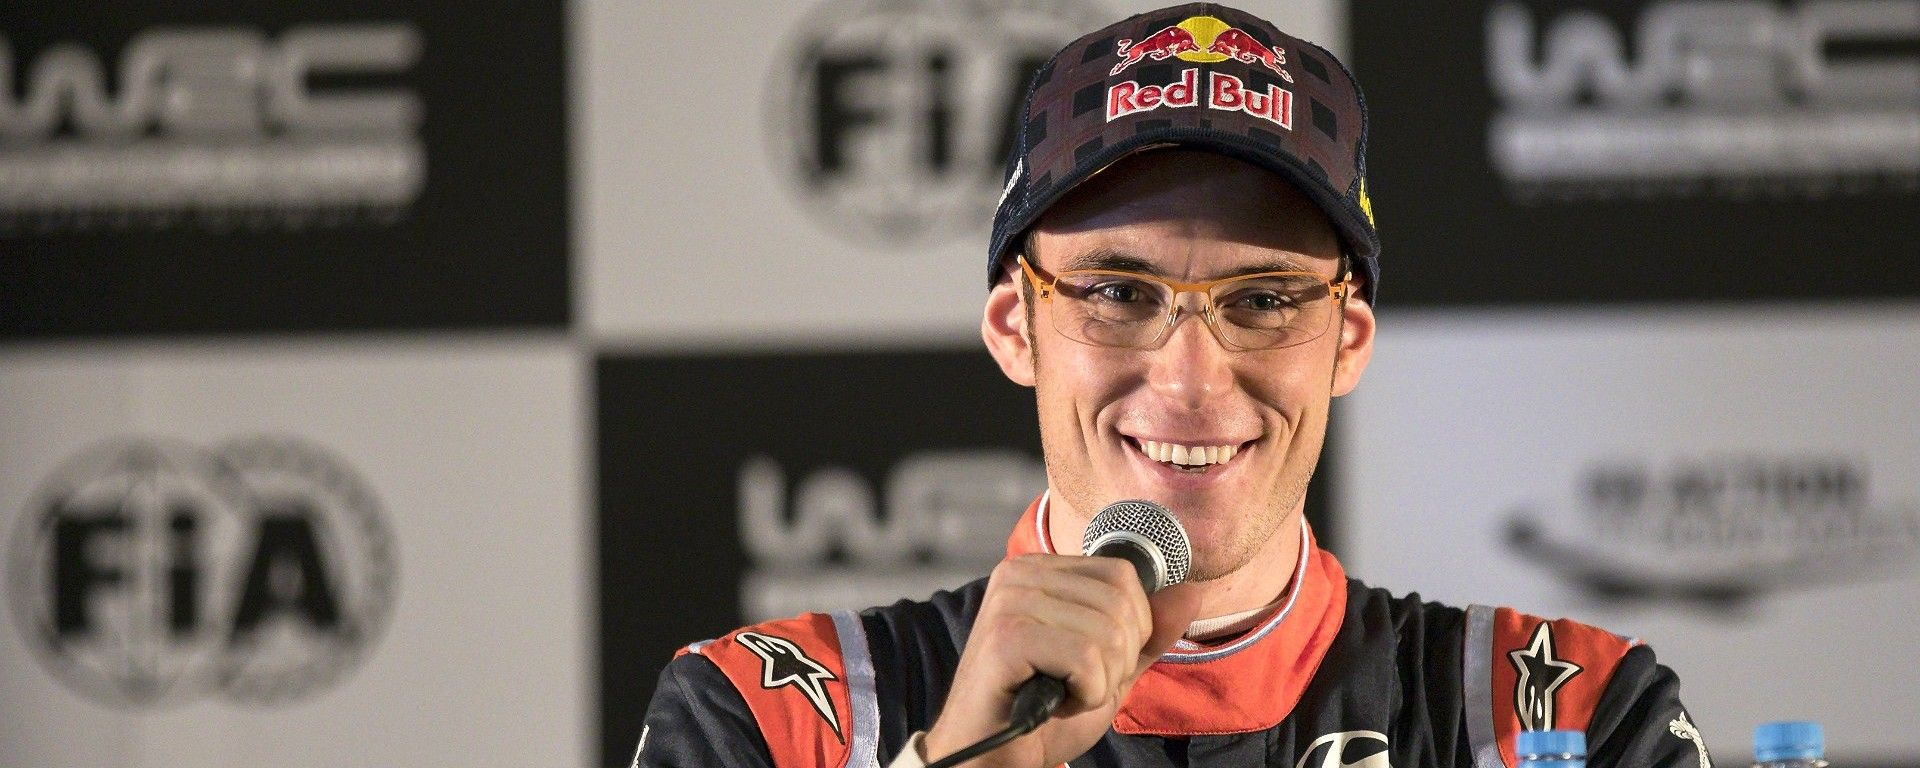 Thierry Neuville - Rally Argentina 2017, WRC